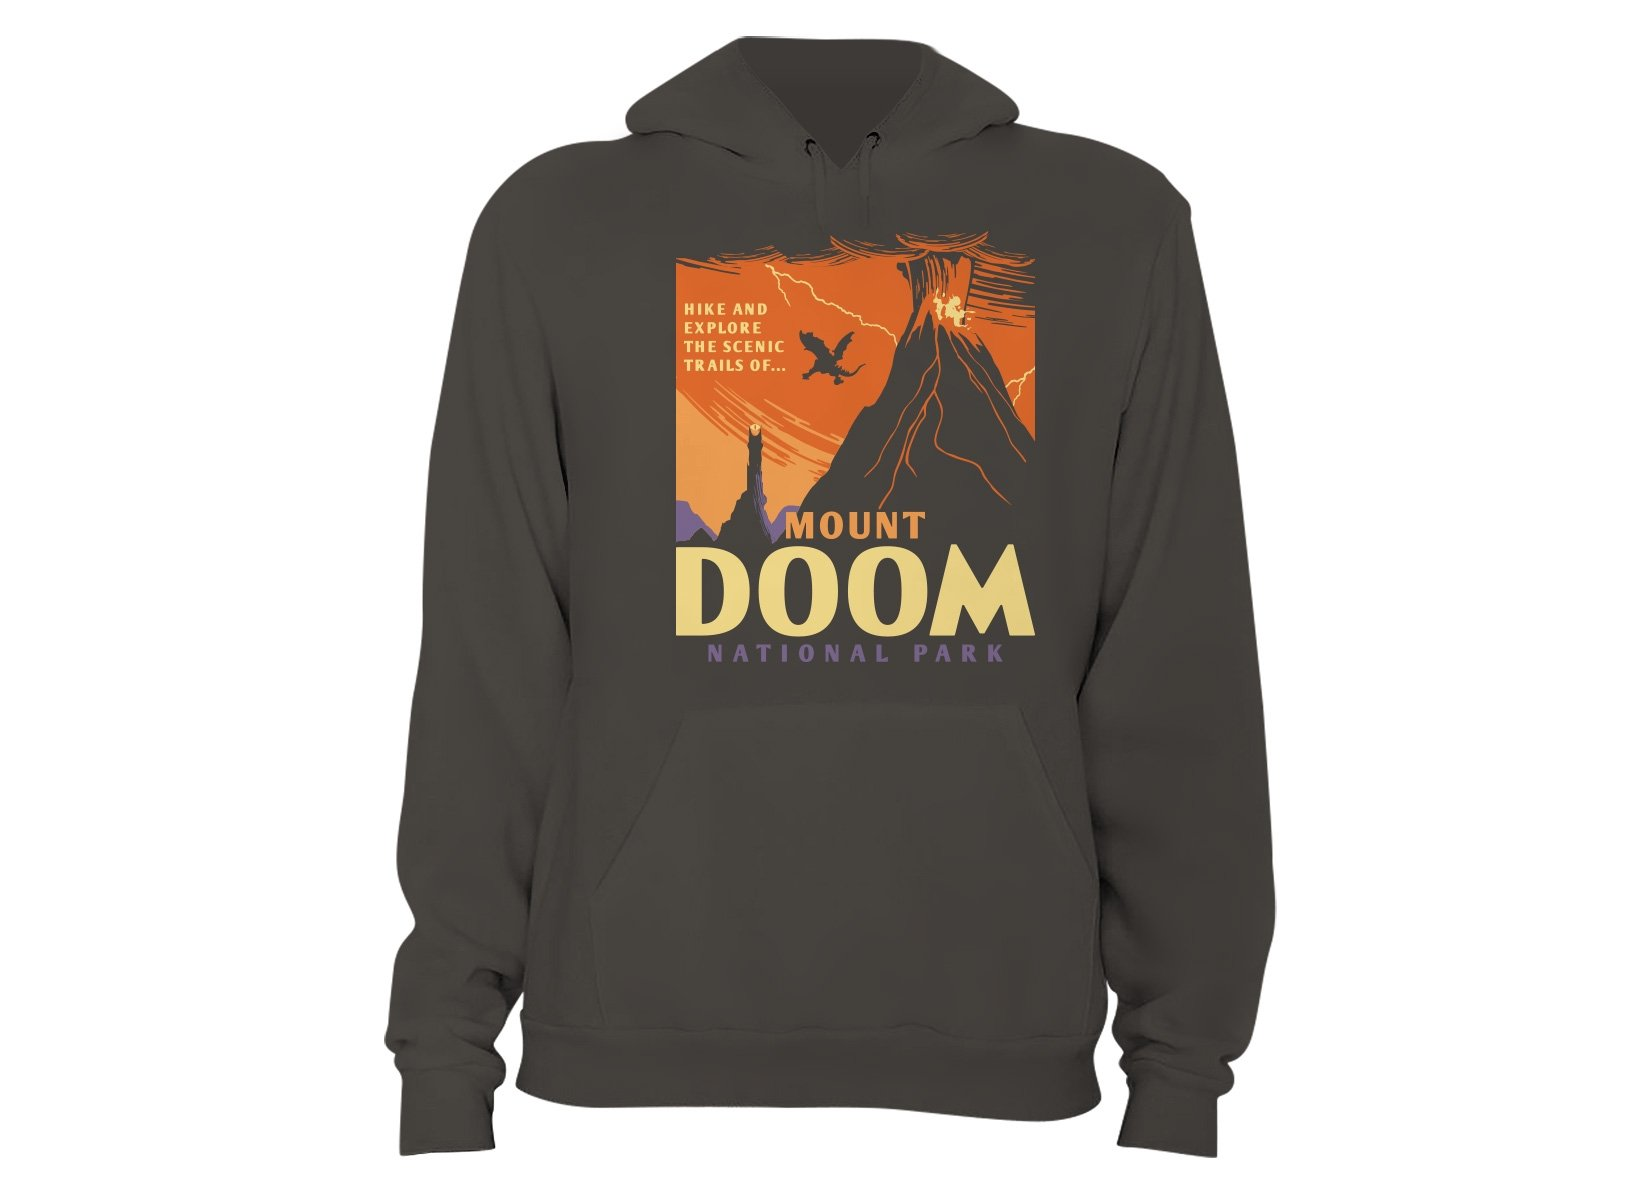 Mount Doom National Park on Hoodie